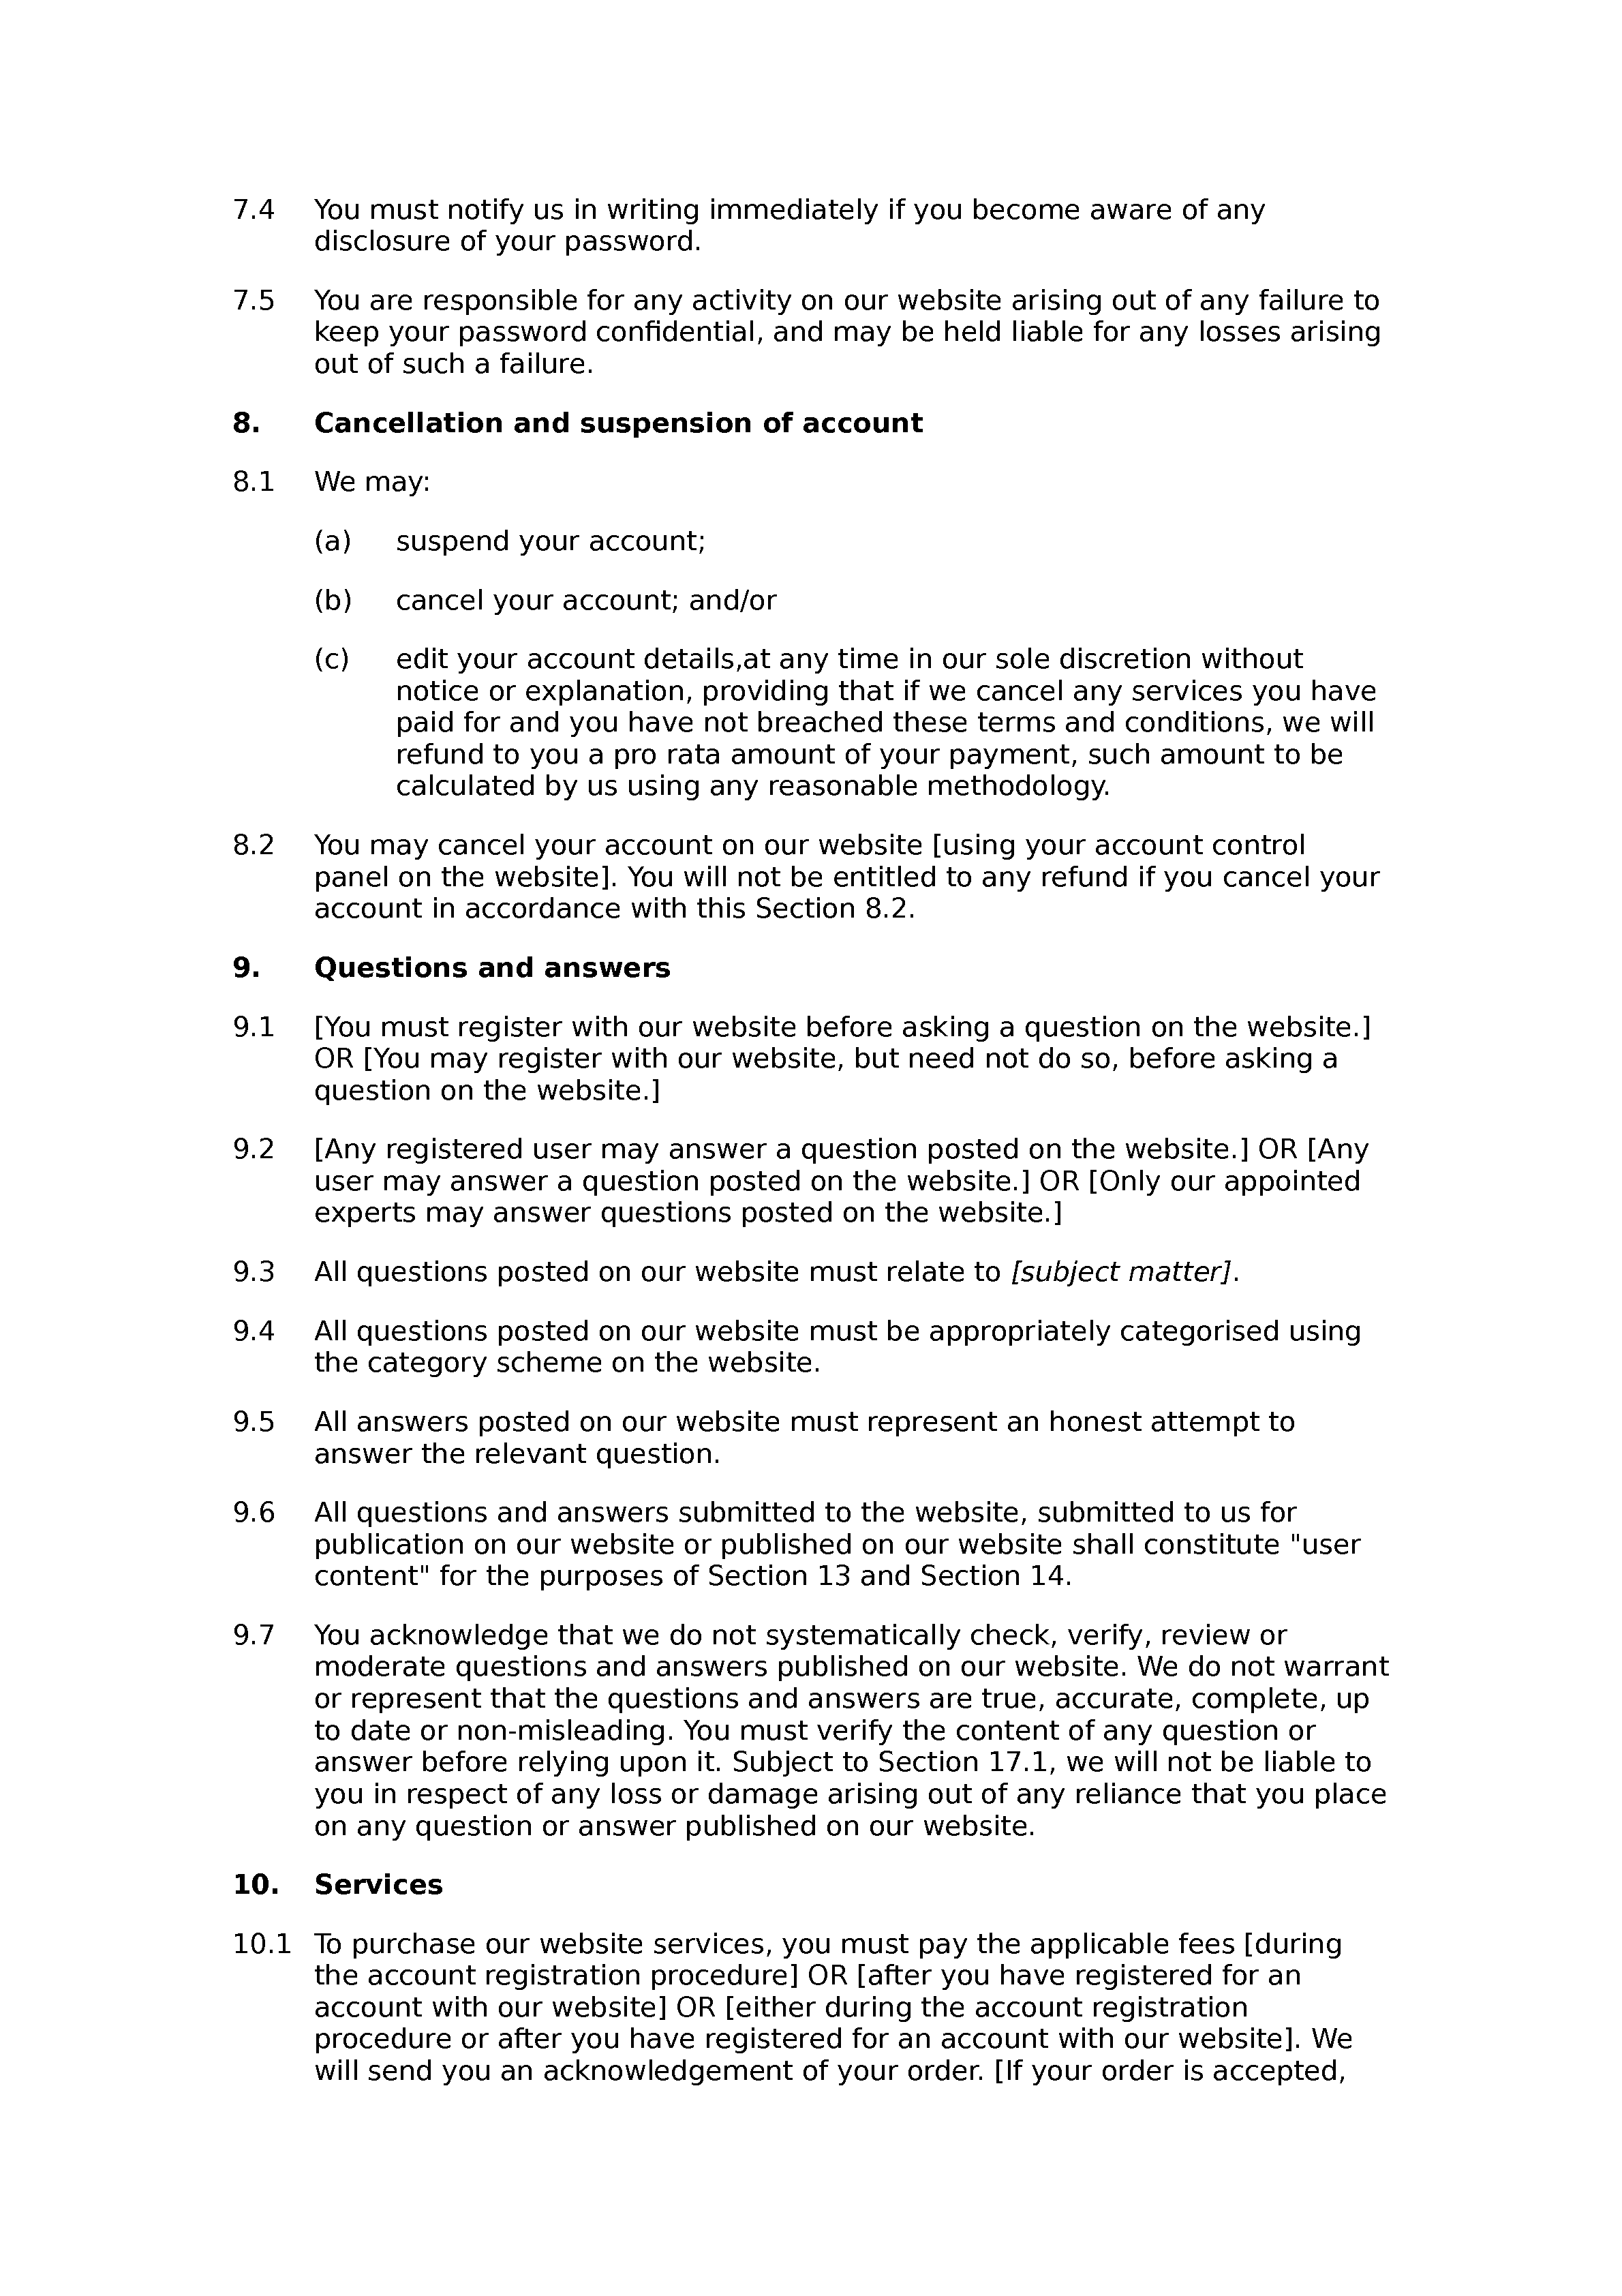 PAYG Q&A website terms and conditions document preview